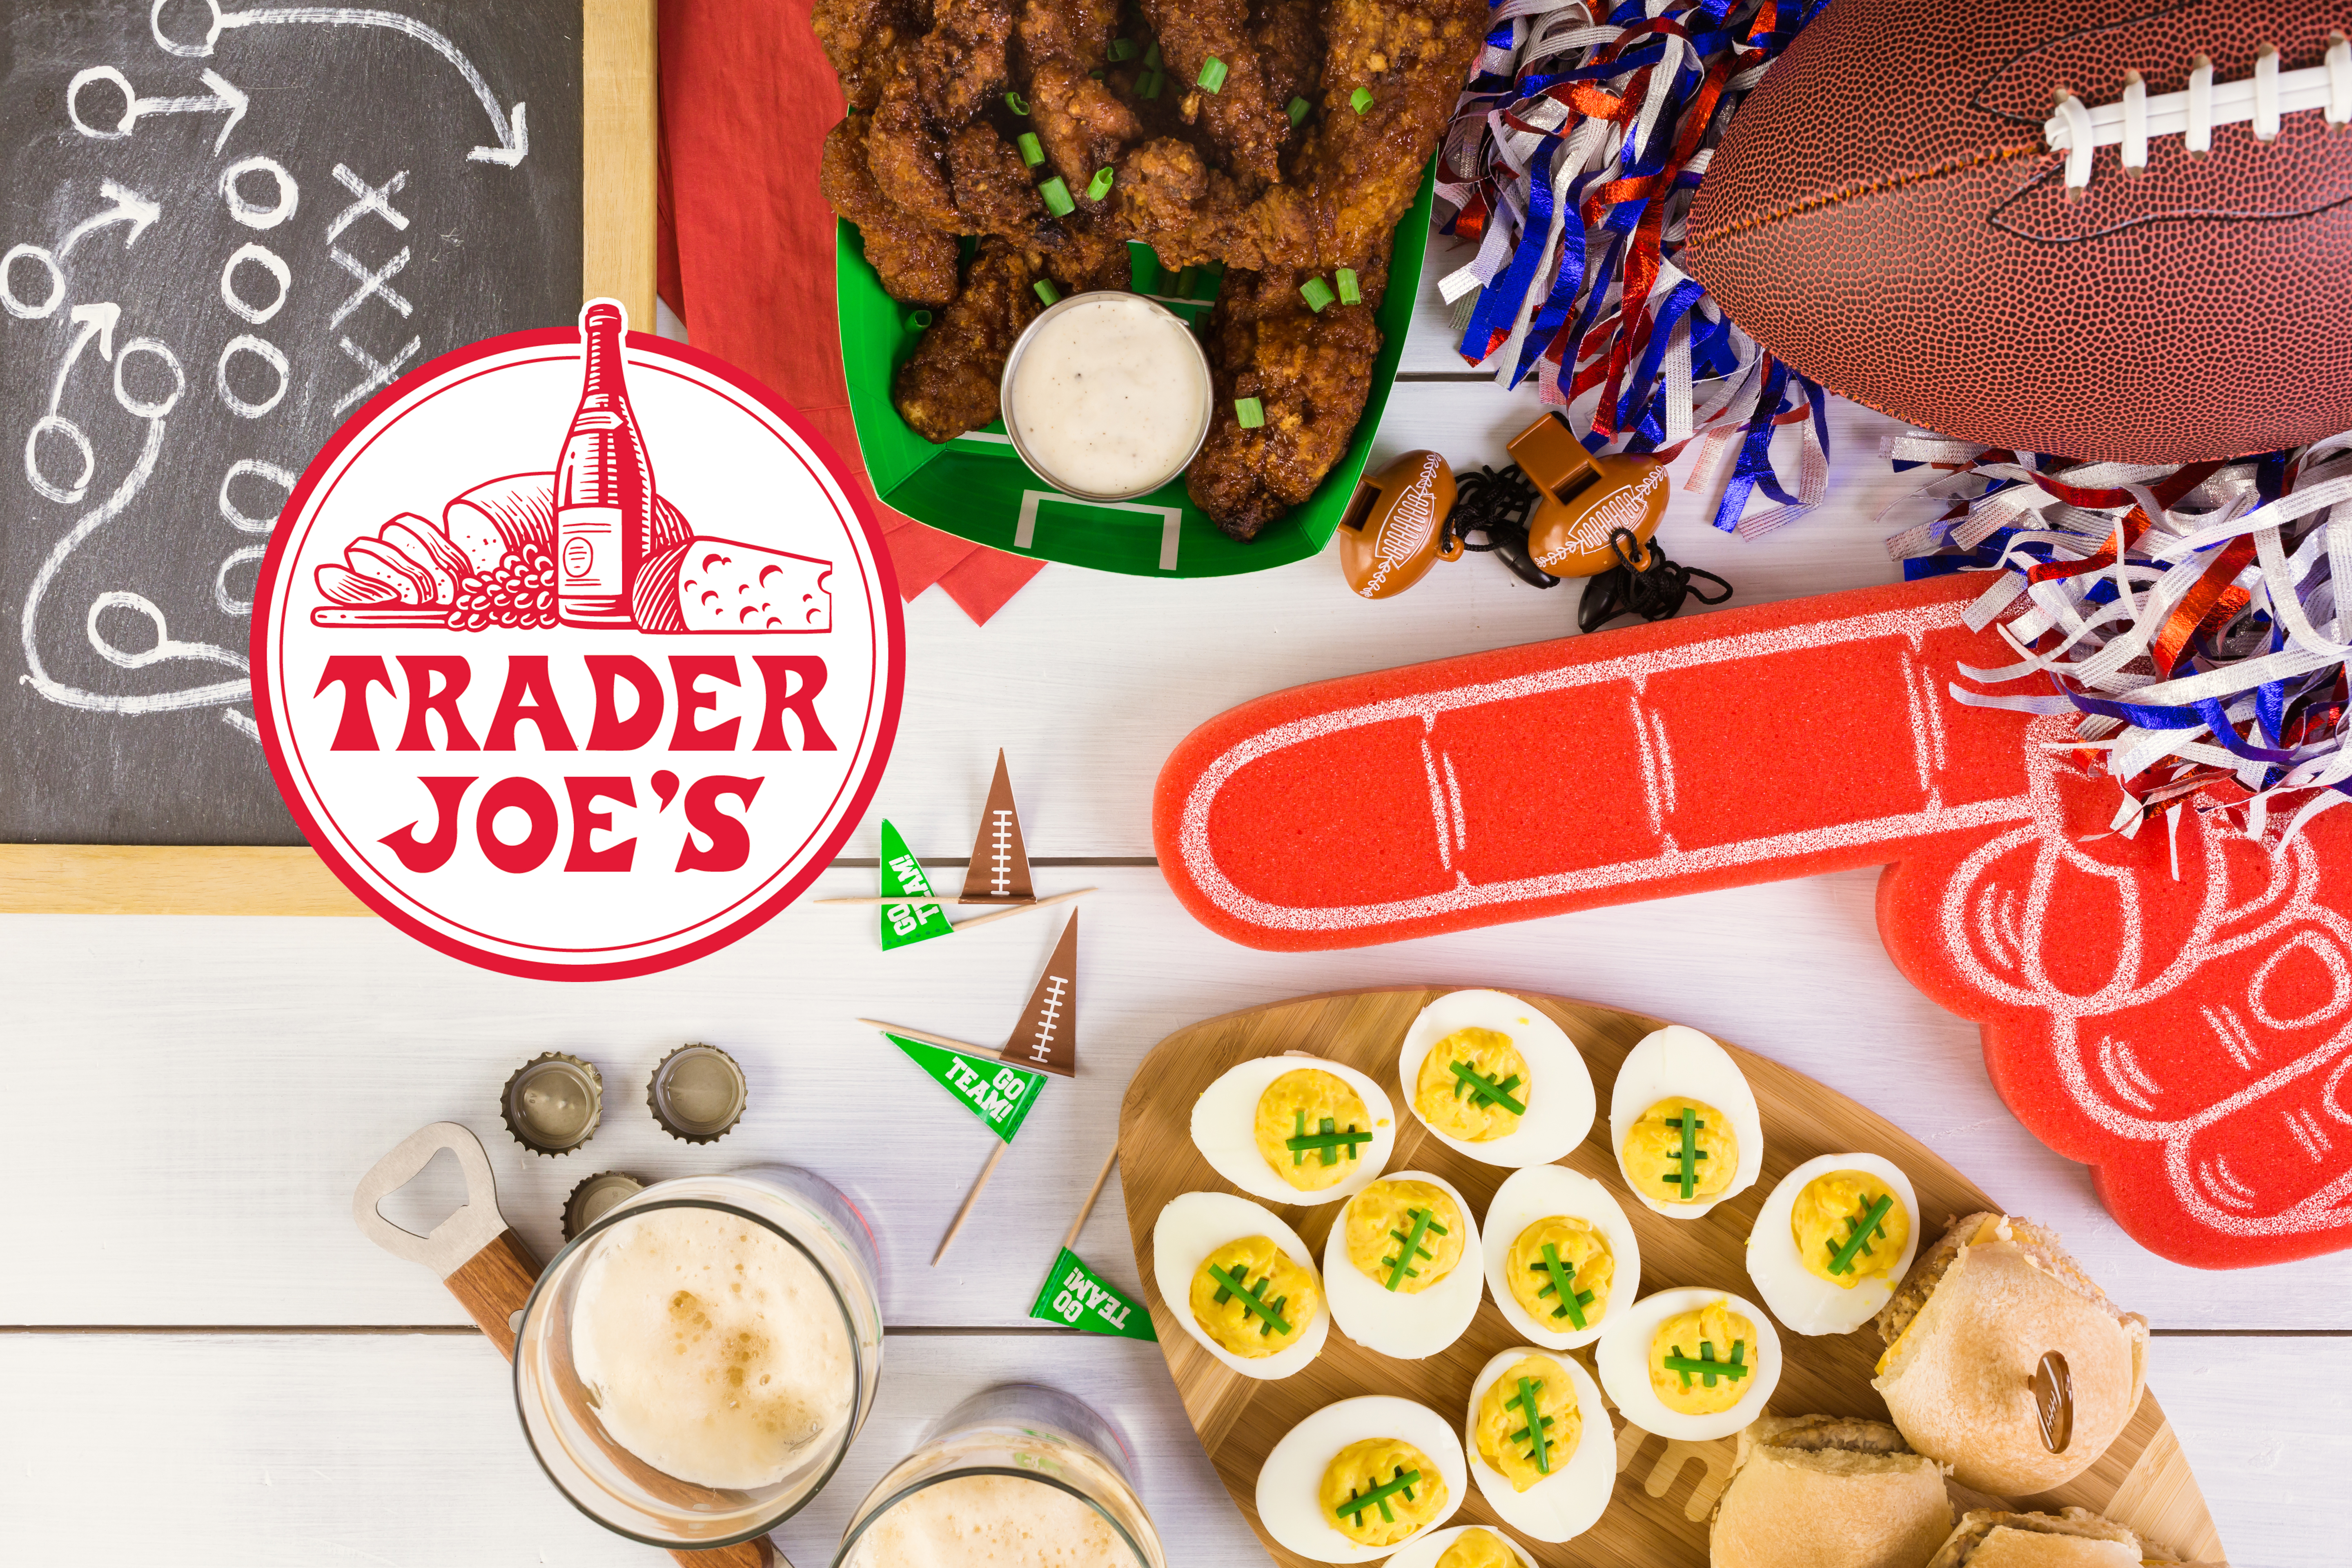 The 7 Best Trader Joe's Snacks for Your Super Bowl Party Spread